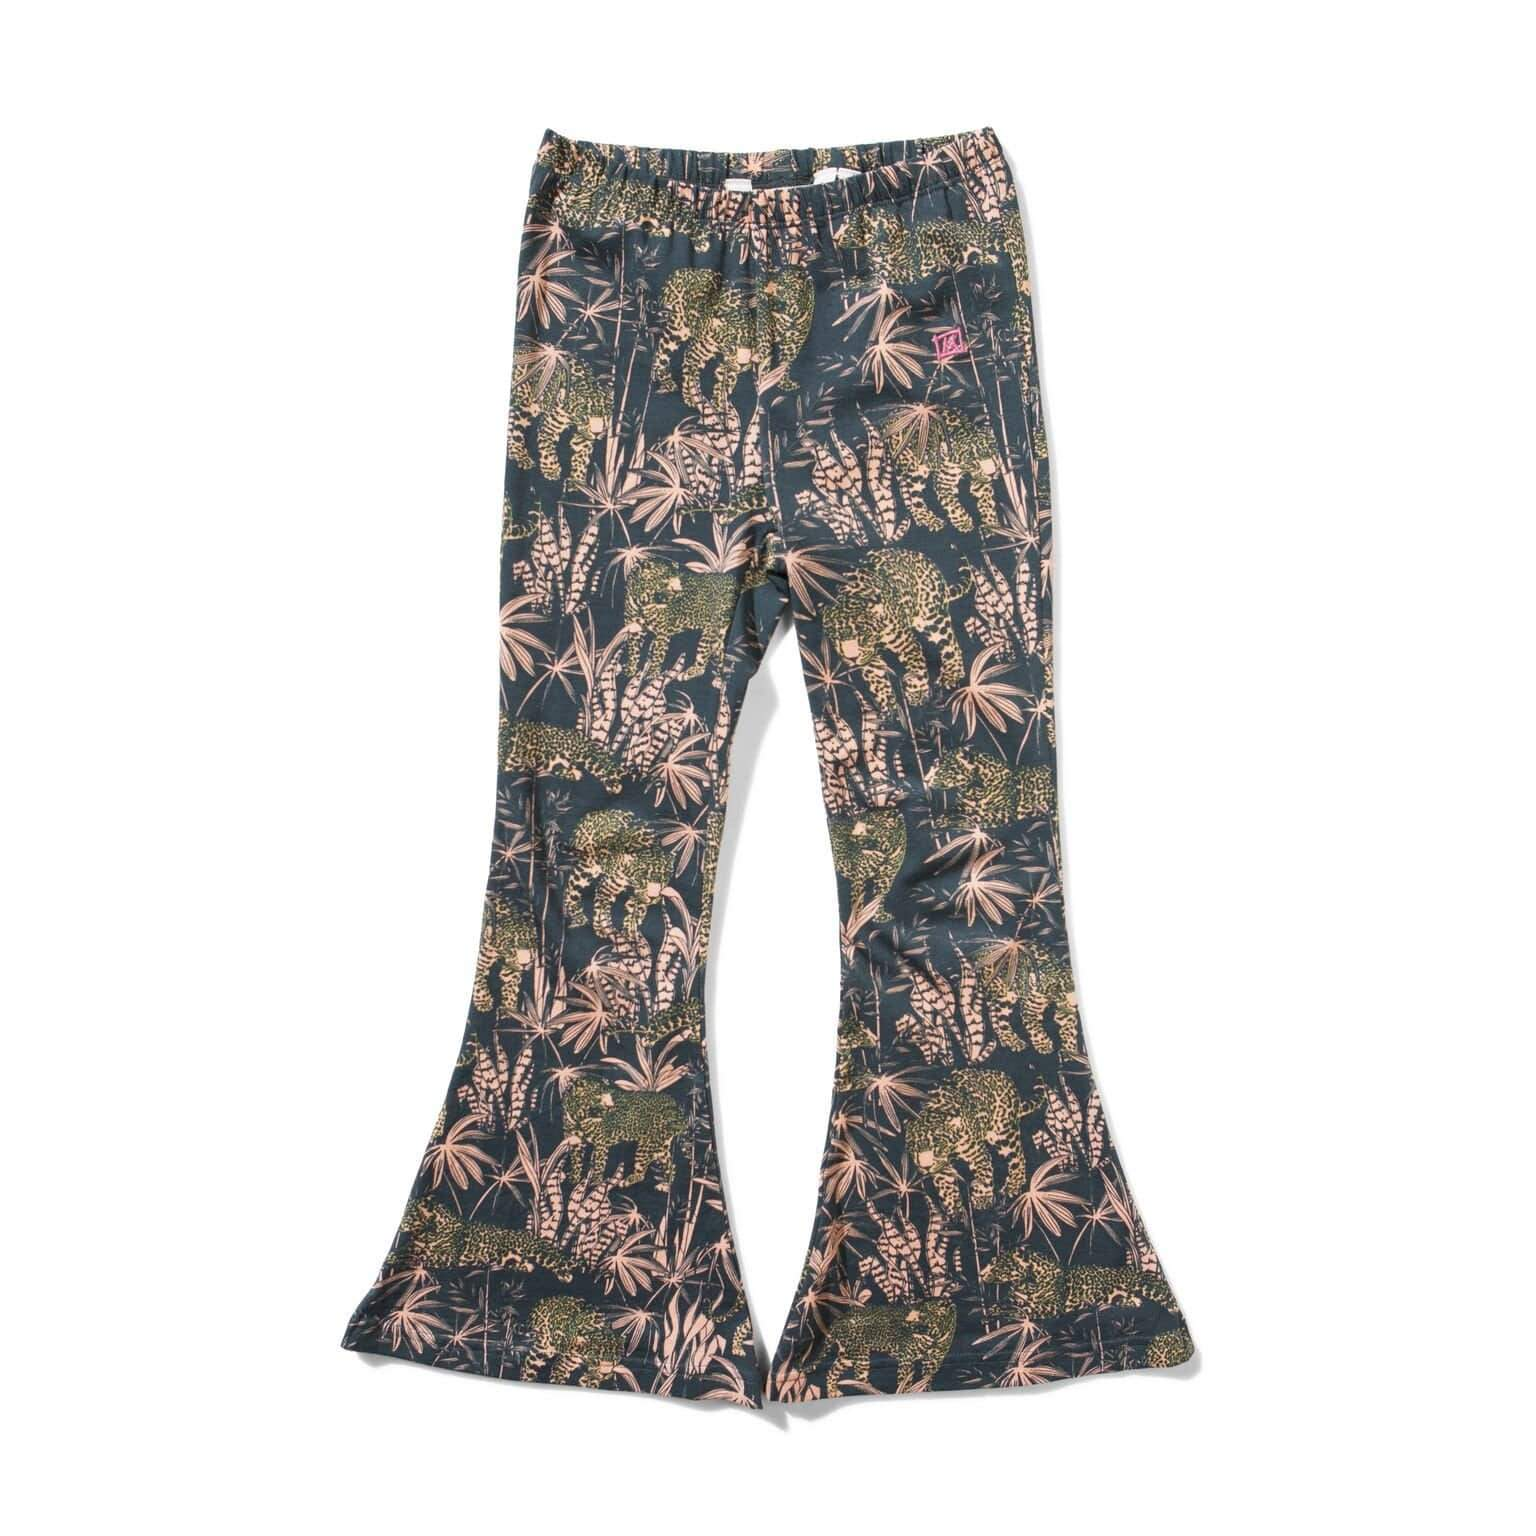 Munster Pants Paradise Pant - In the Jungle